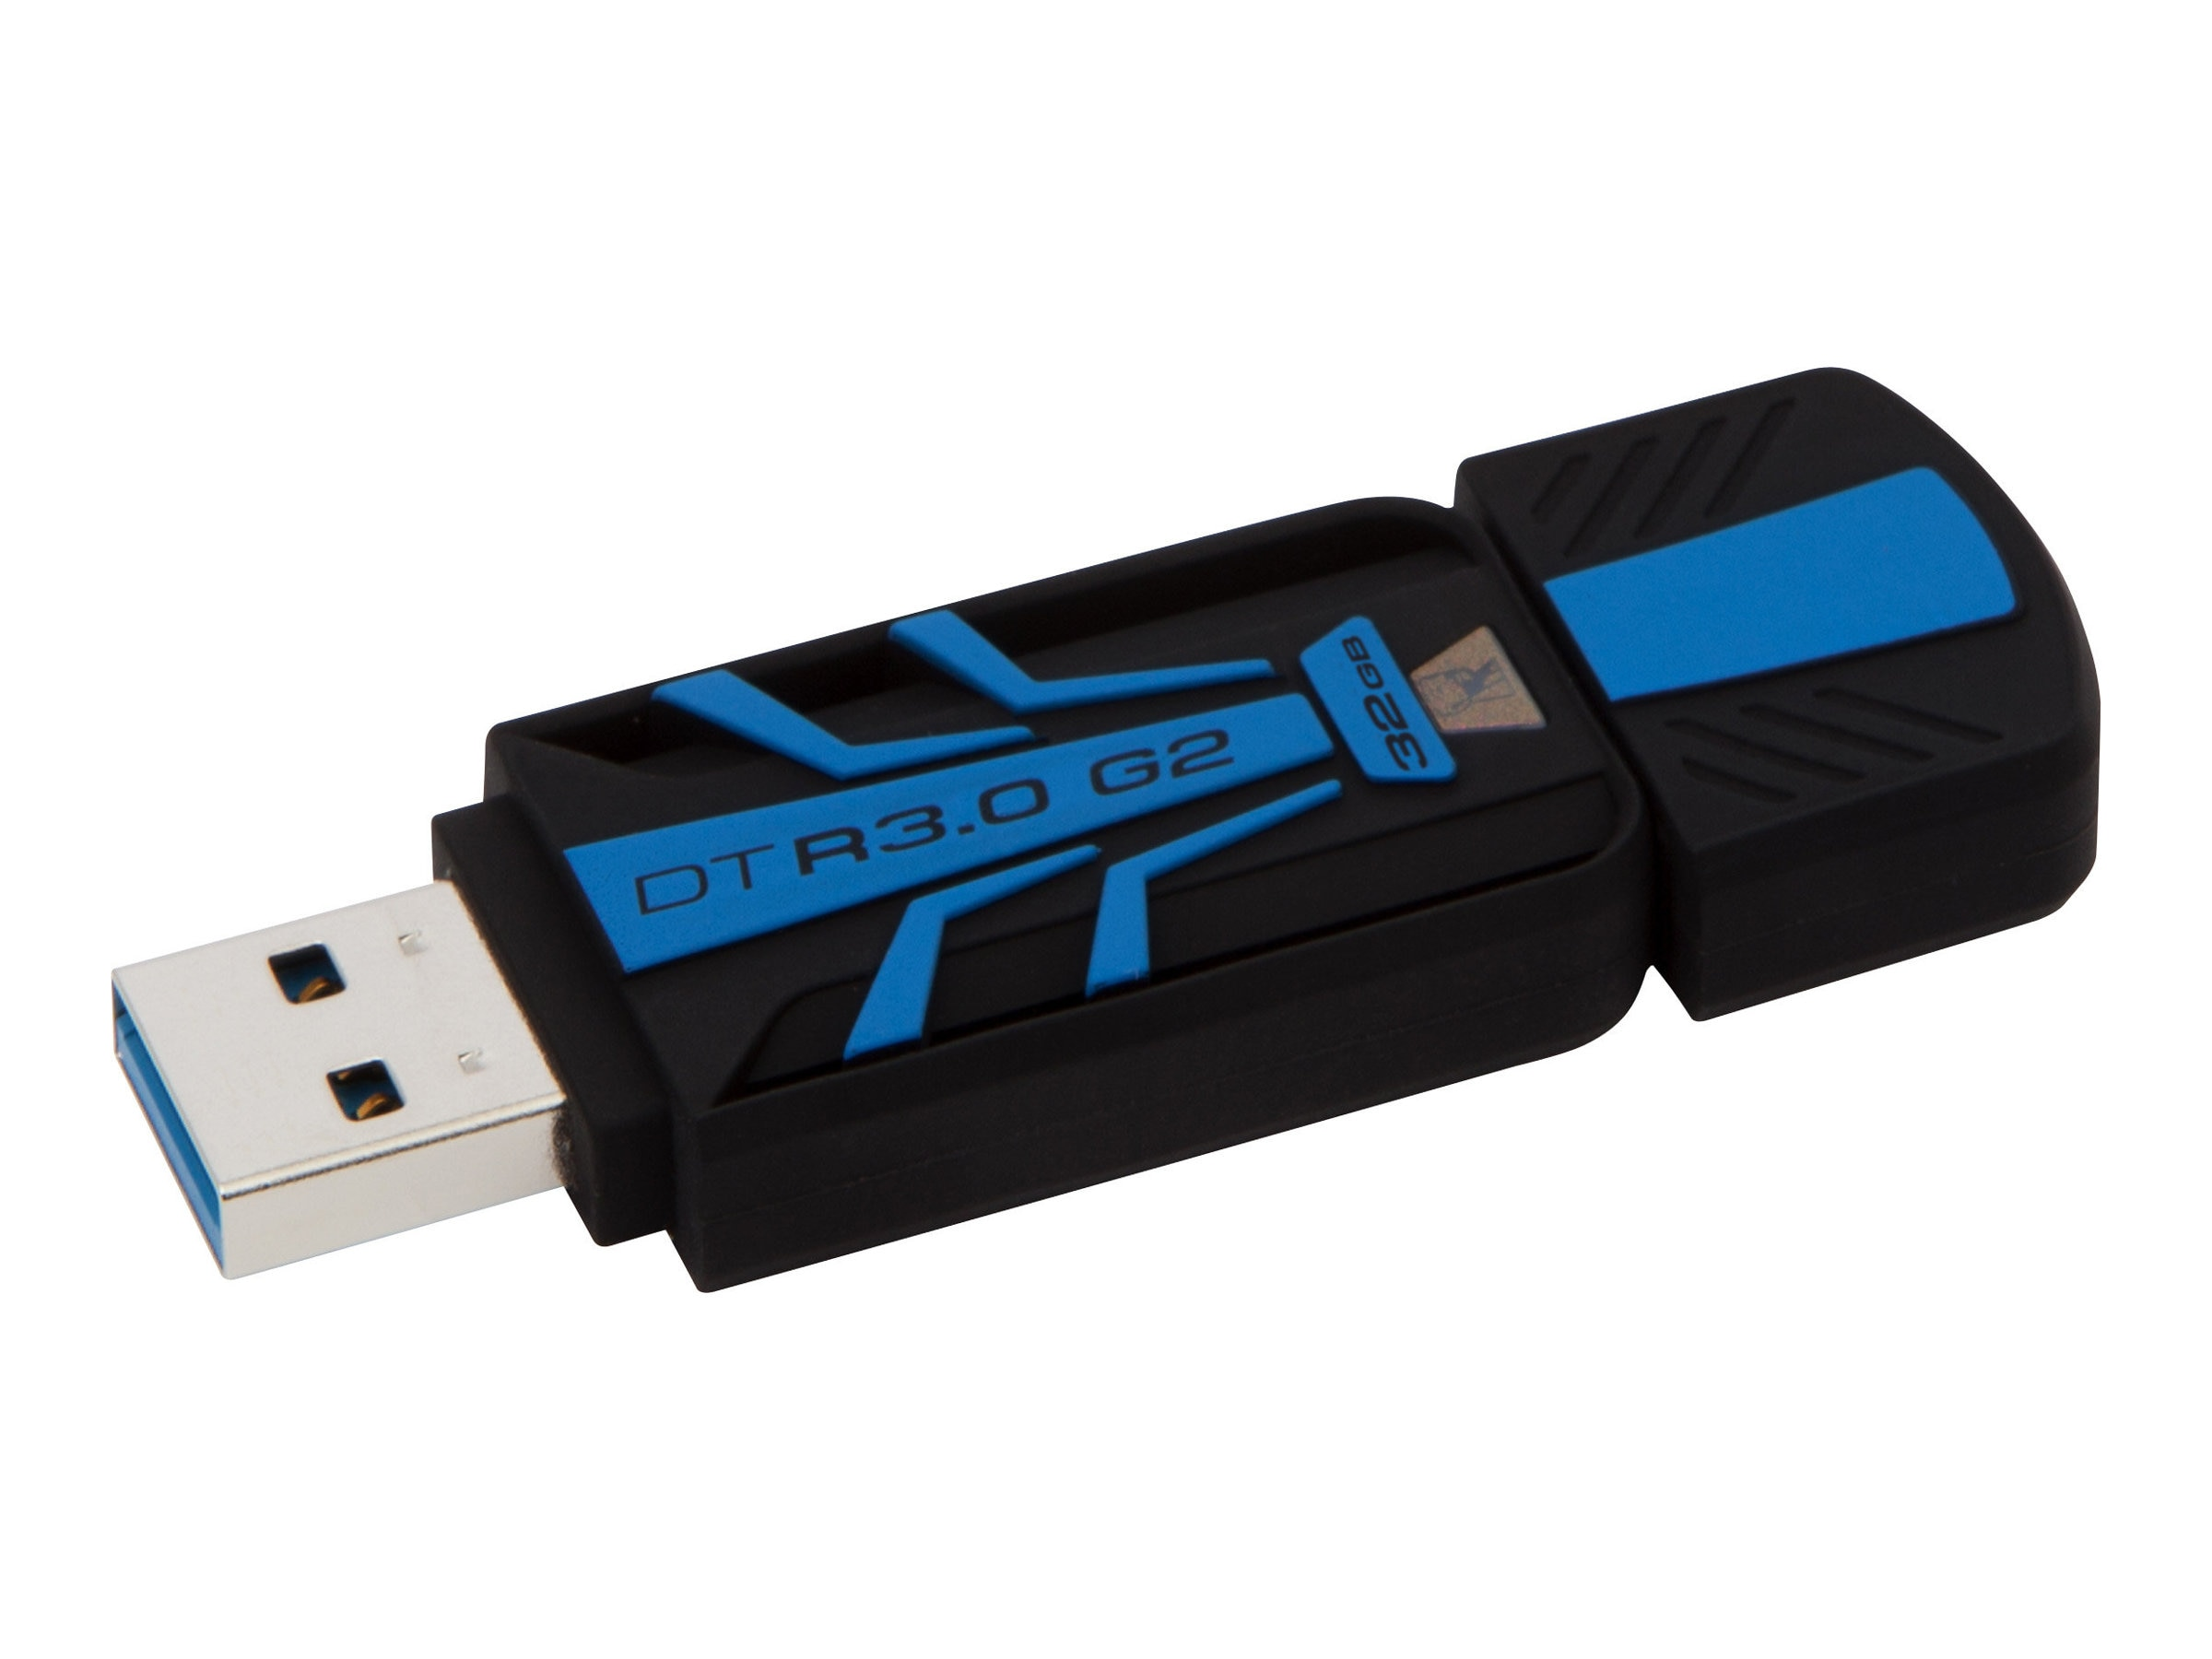 Kingston 32GB DataTraveler R3.0 G2 USB 3.0 Flash Drive, DTR30G2/32GB, 17099916, Flash Drives